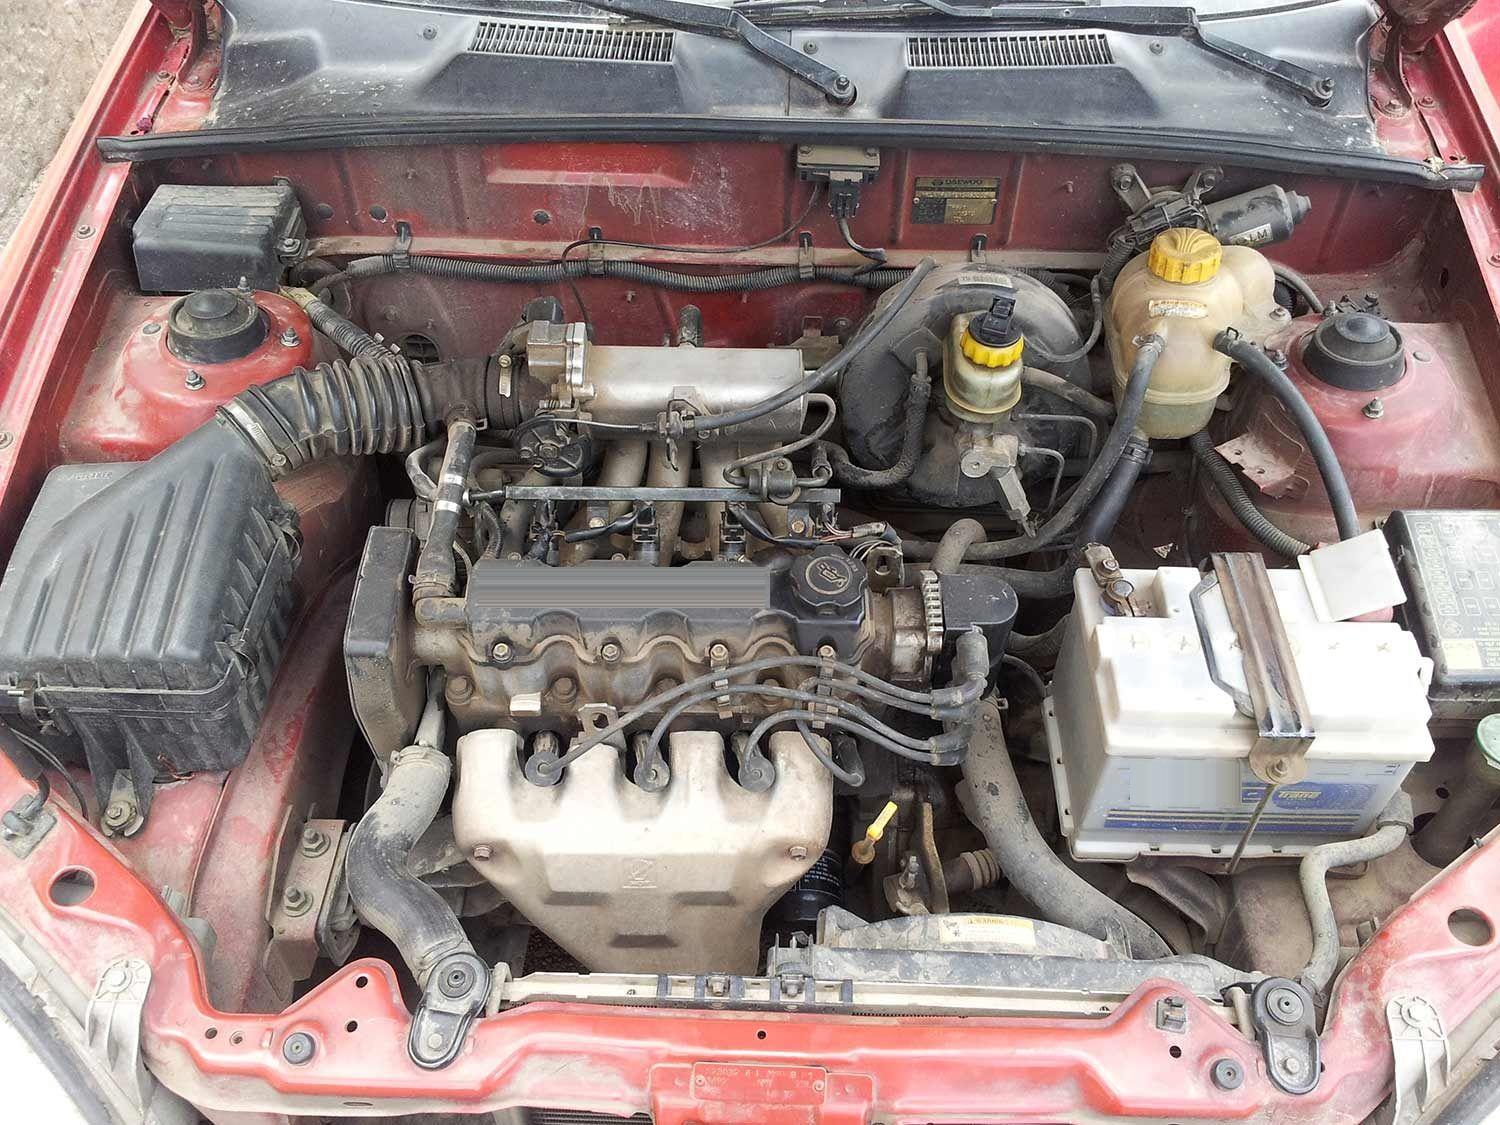 Pin by UsedPartx on Used Engines Used engines